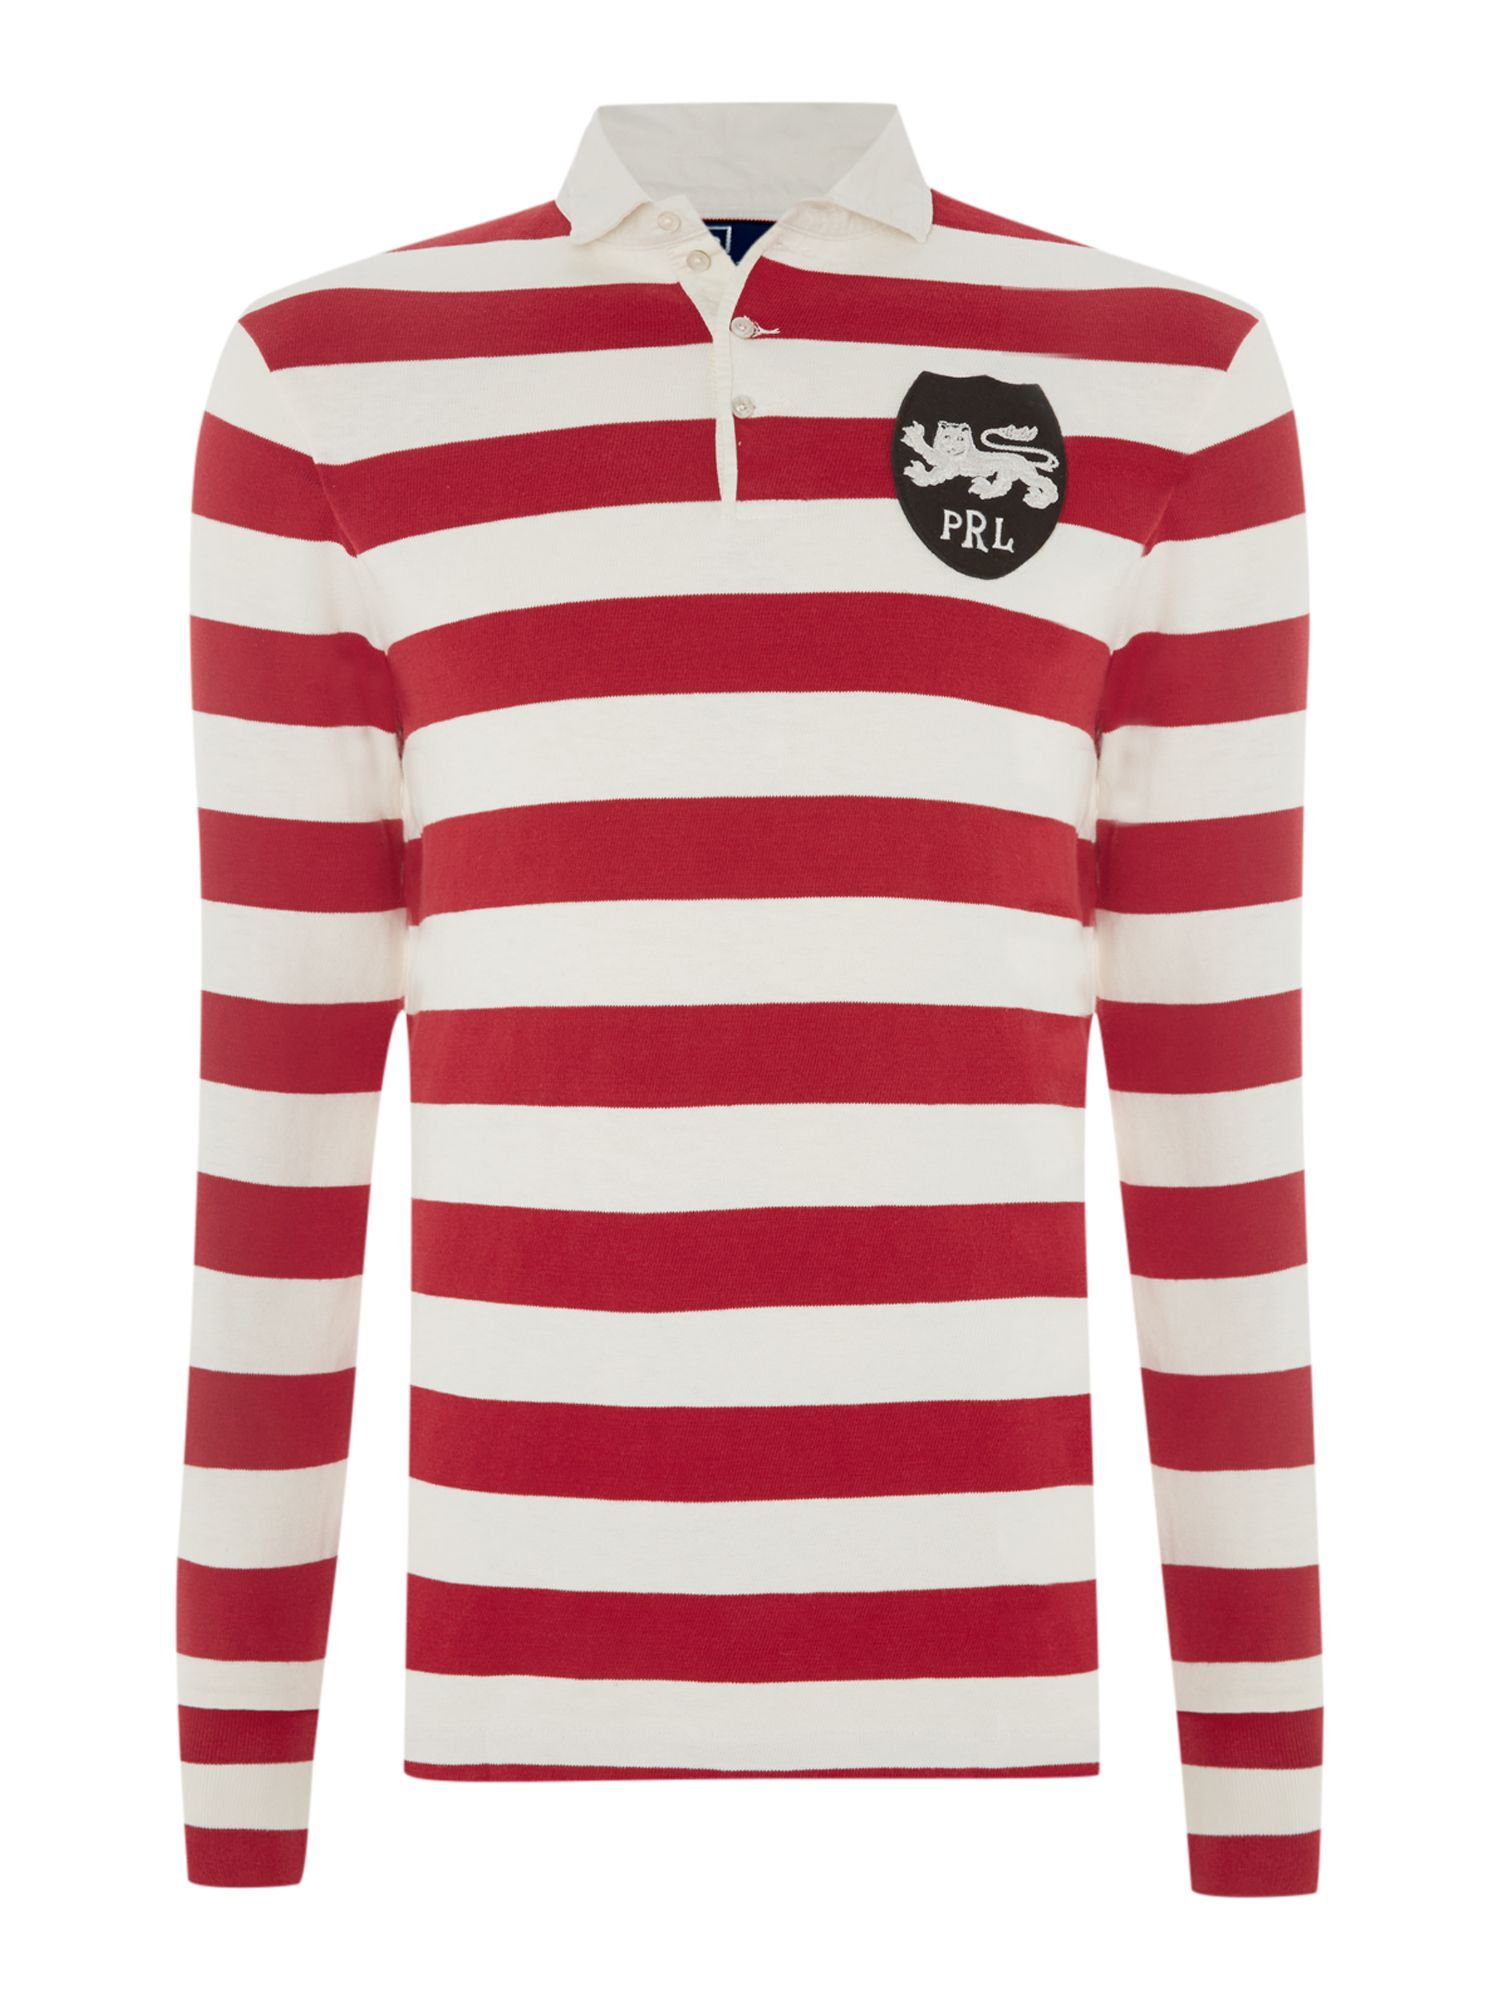 Custom fit slub & jersey block stripe rugby shirt